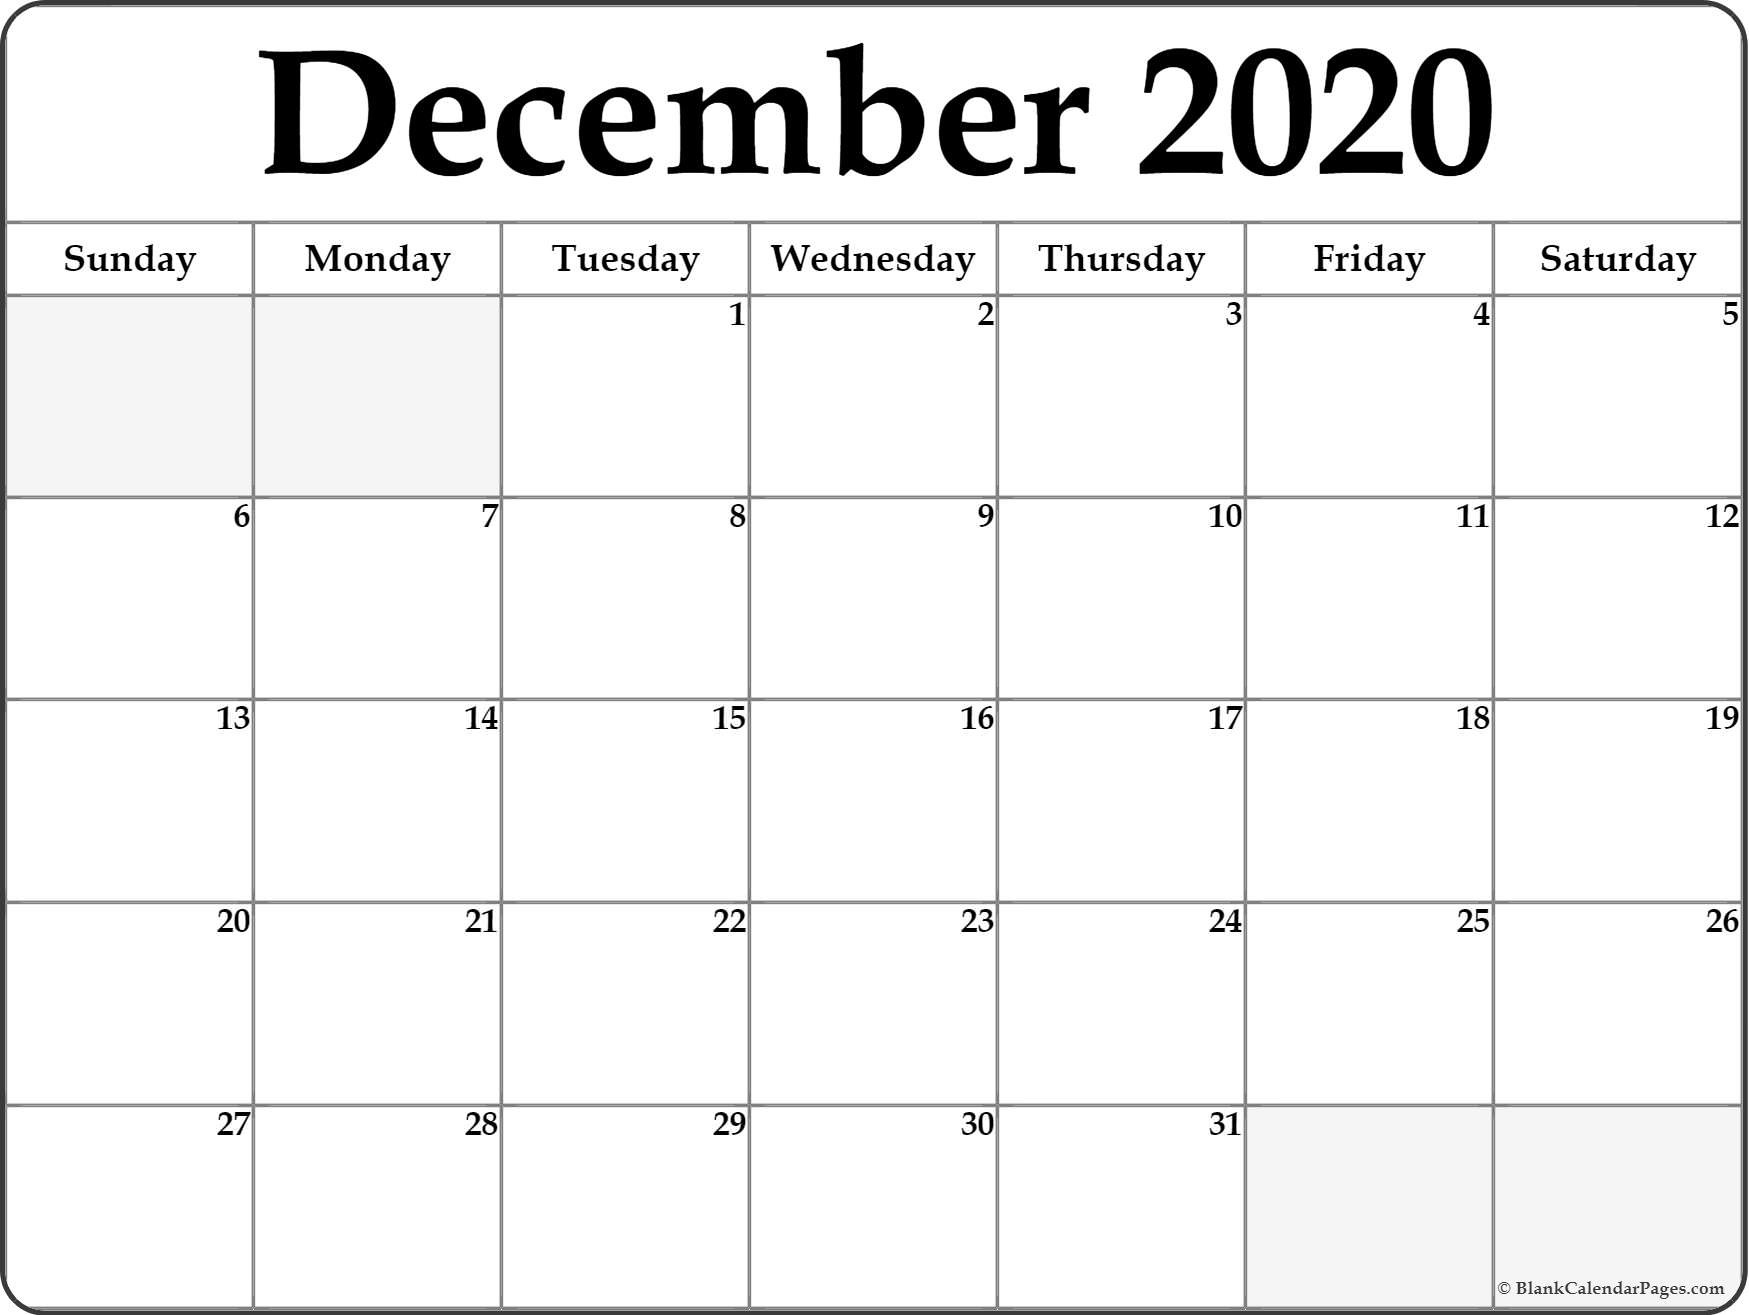 December 2020 Calendar | Free Printable Monthly Calendars-Blank 2020 Calendar Template